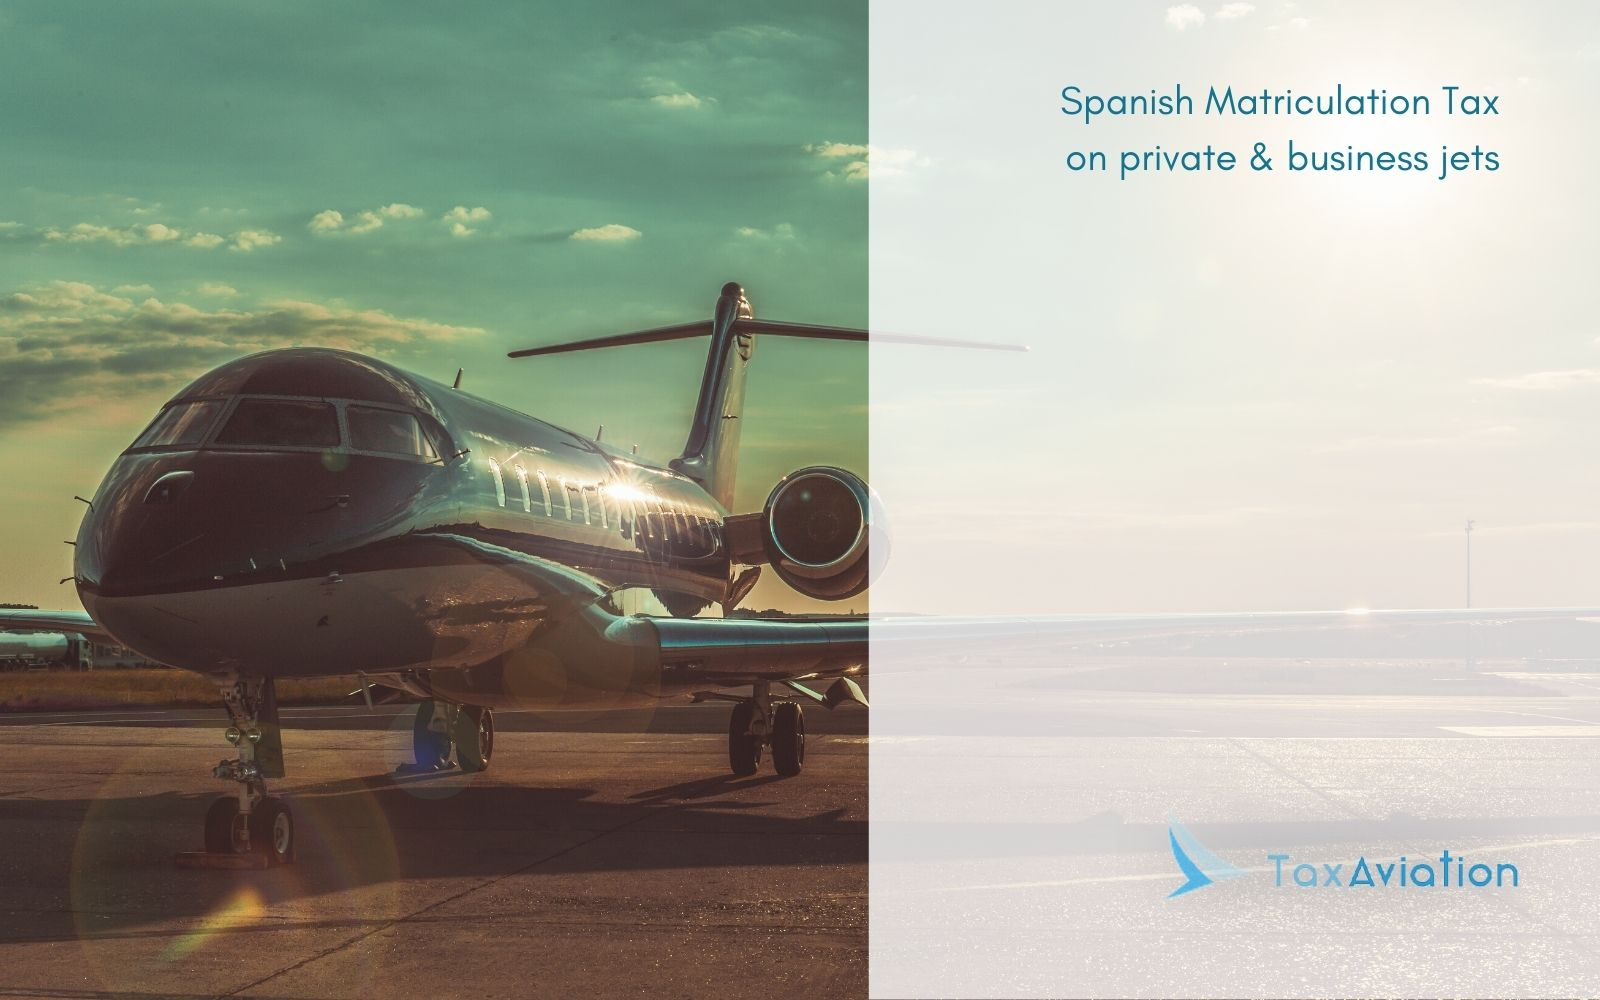 Spanish Matriculation Tax on private & business jets